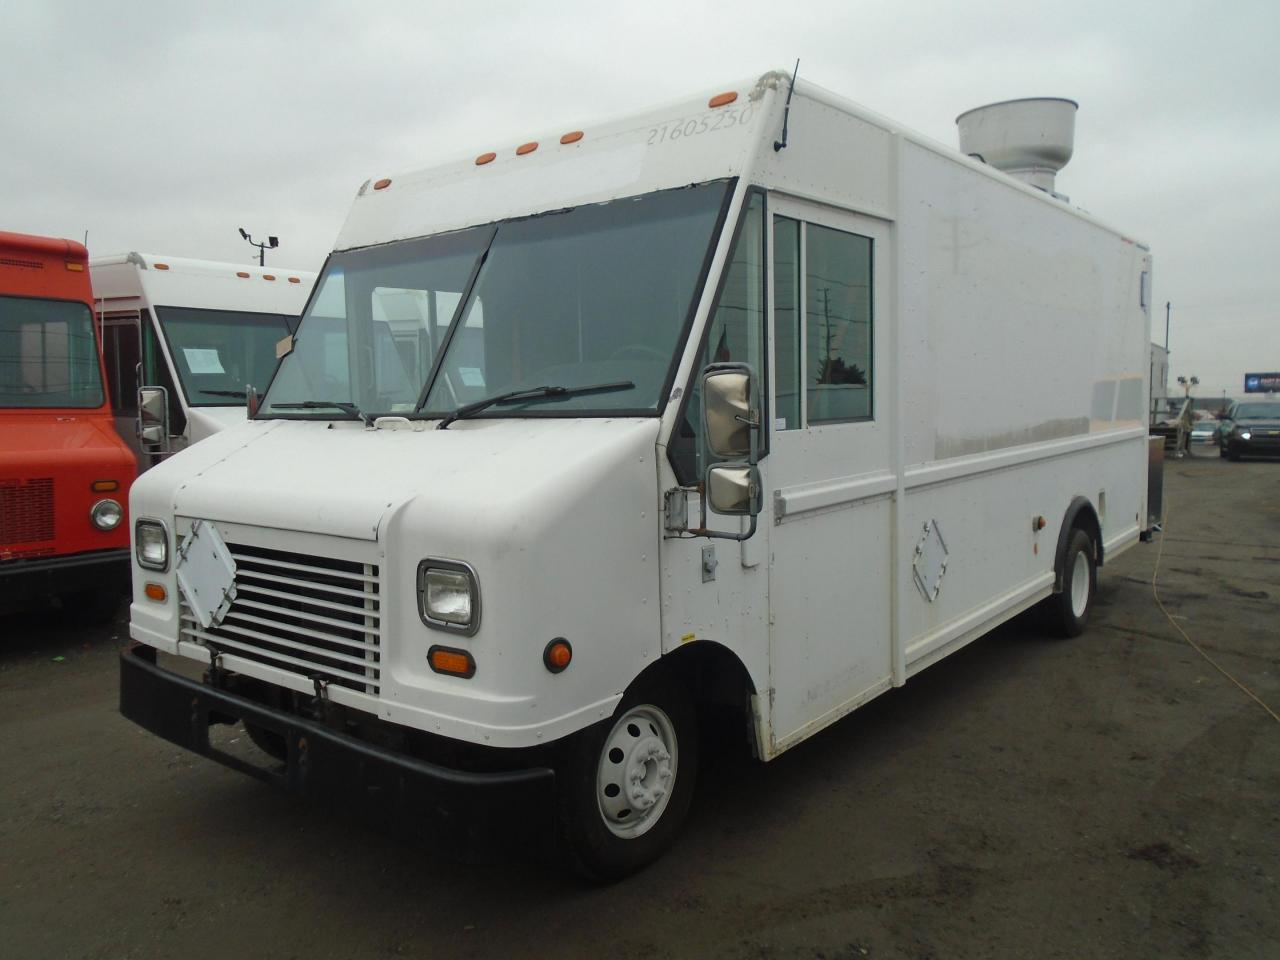 2006 Ford food truck